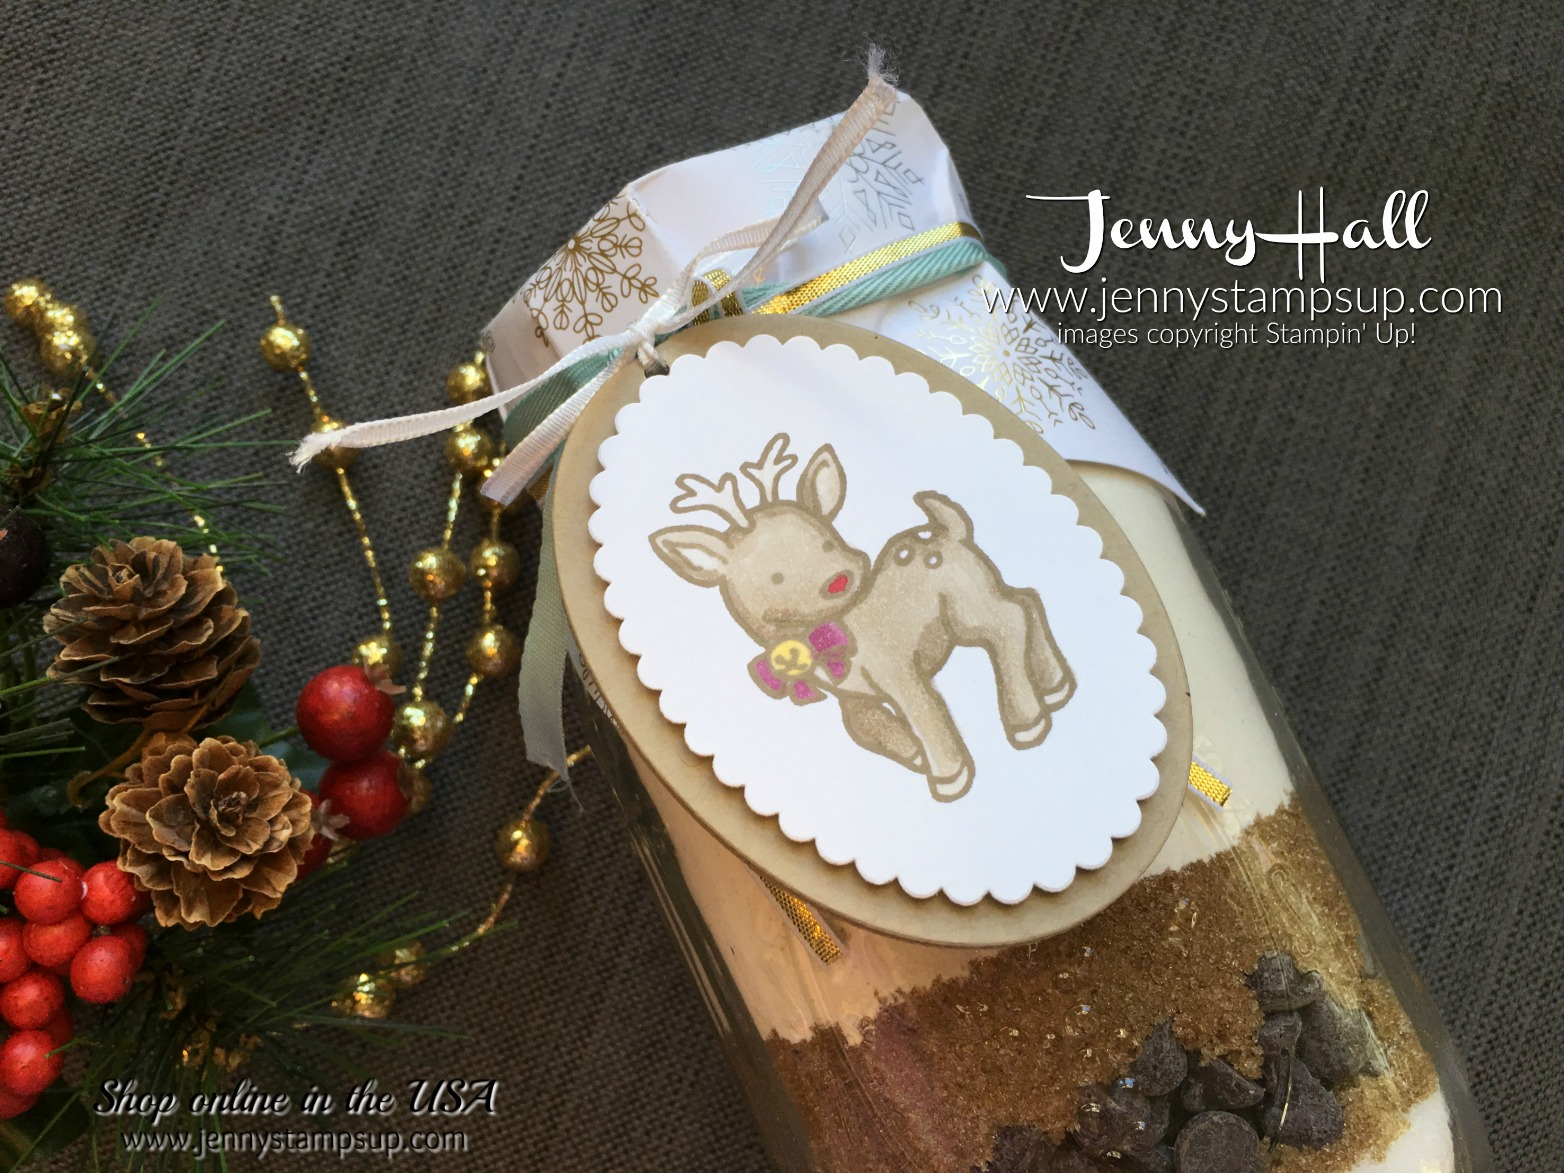 Teacher Christmas Gifts by Jenny Hall at www.jennystampsup.com for cardmaking, scrapbooking, papercraft gift giving, video tutorials and more!